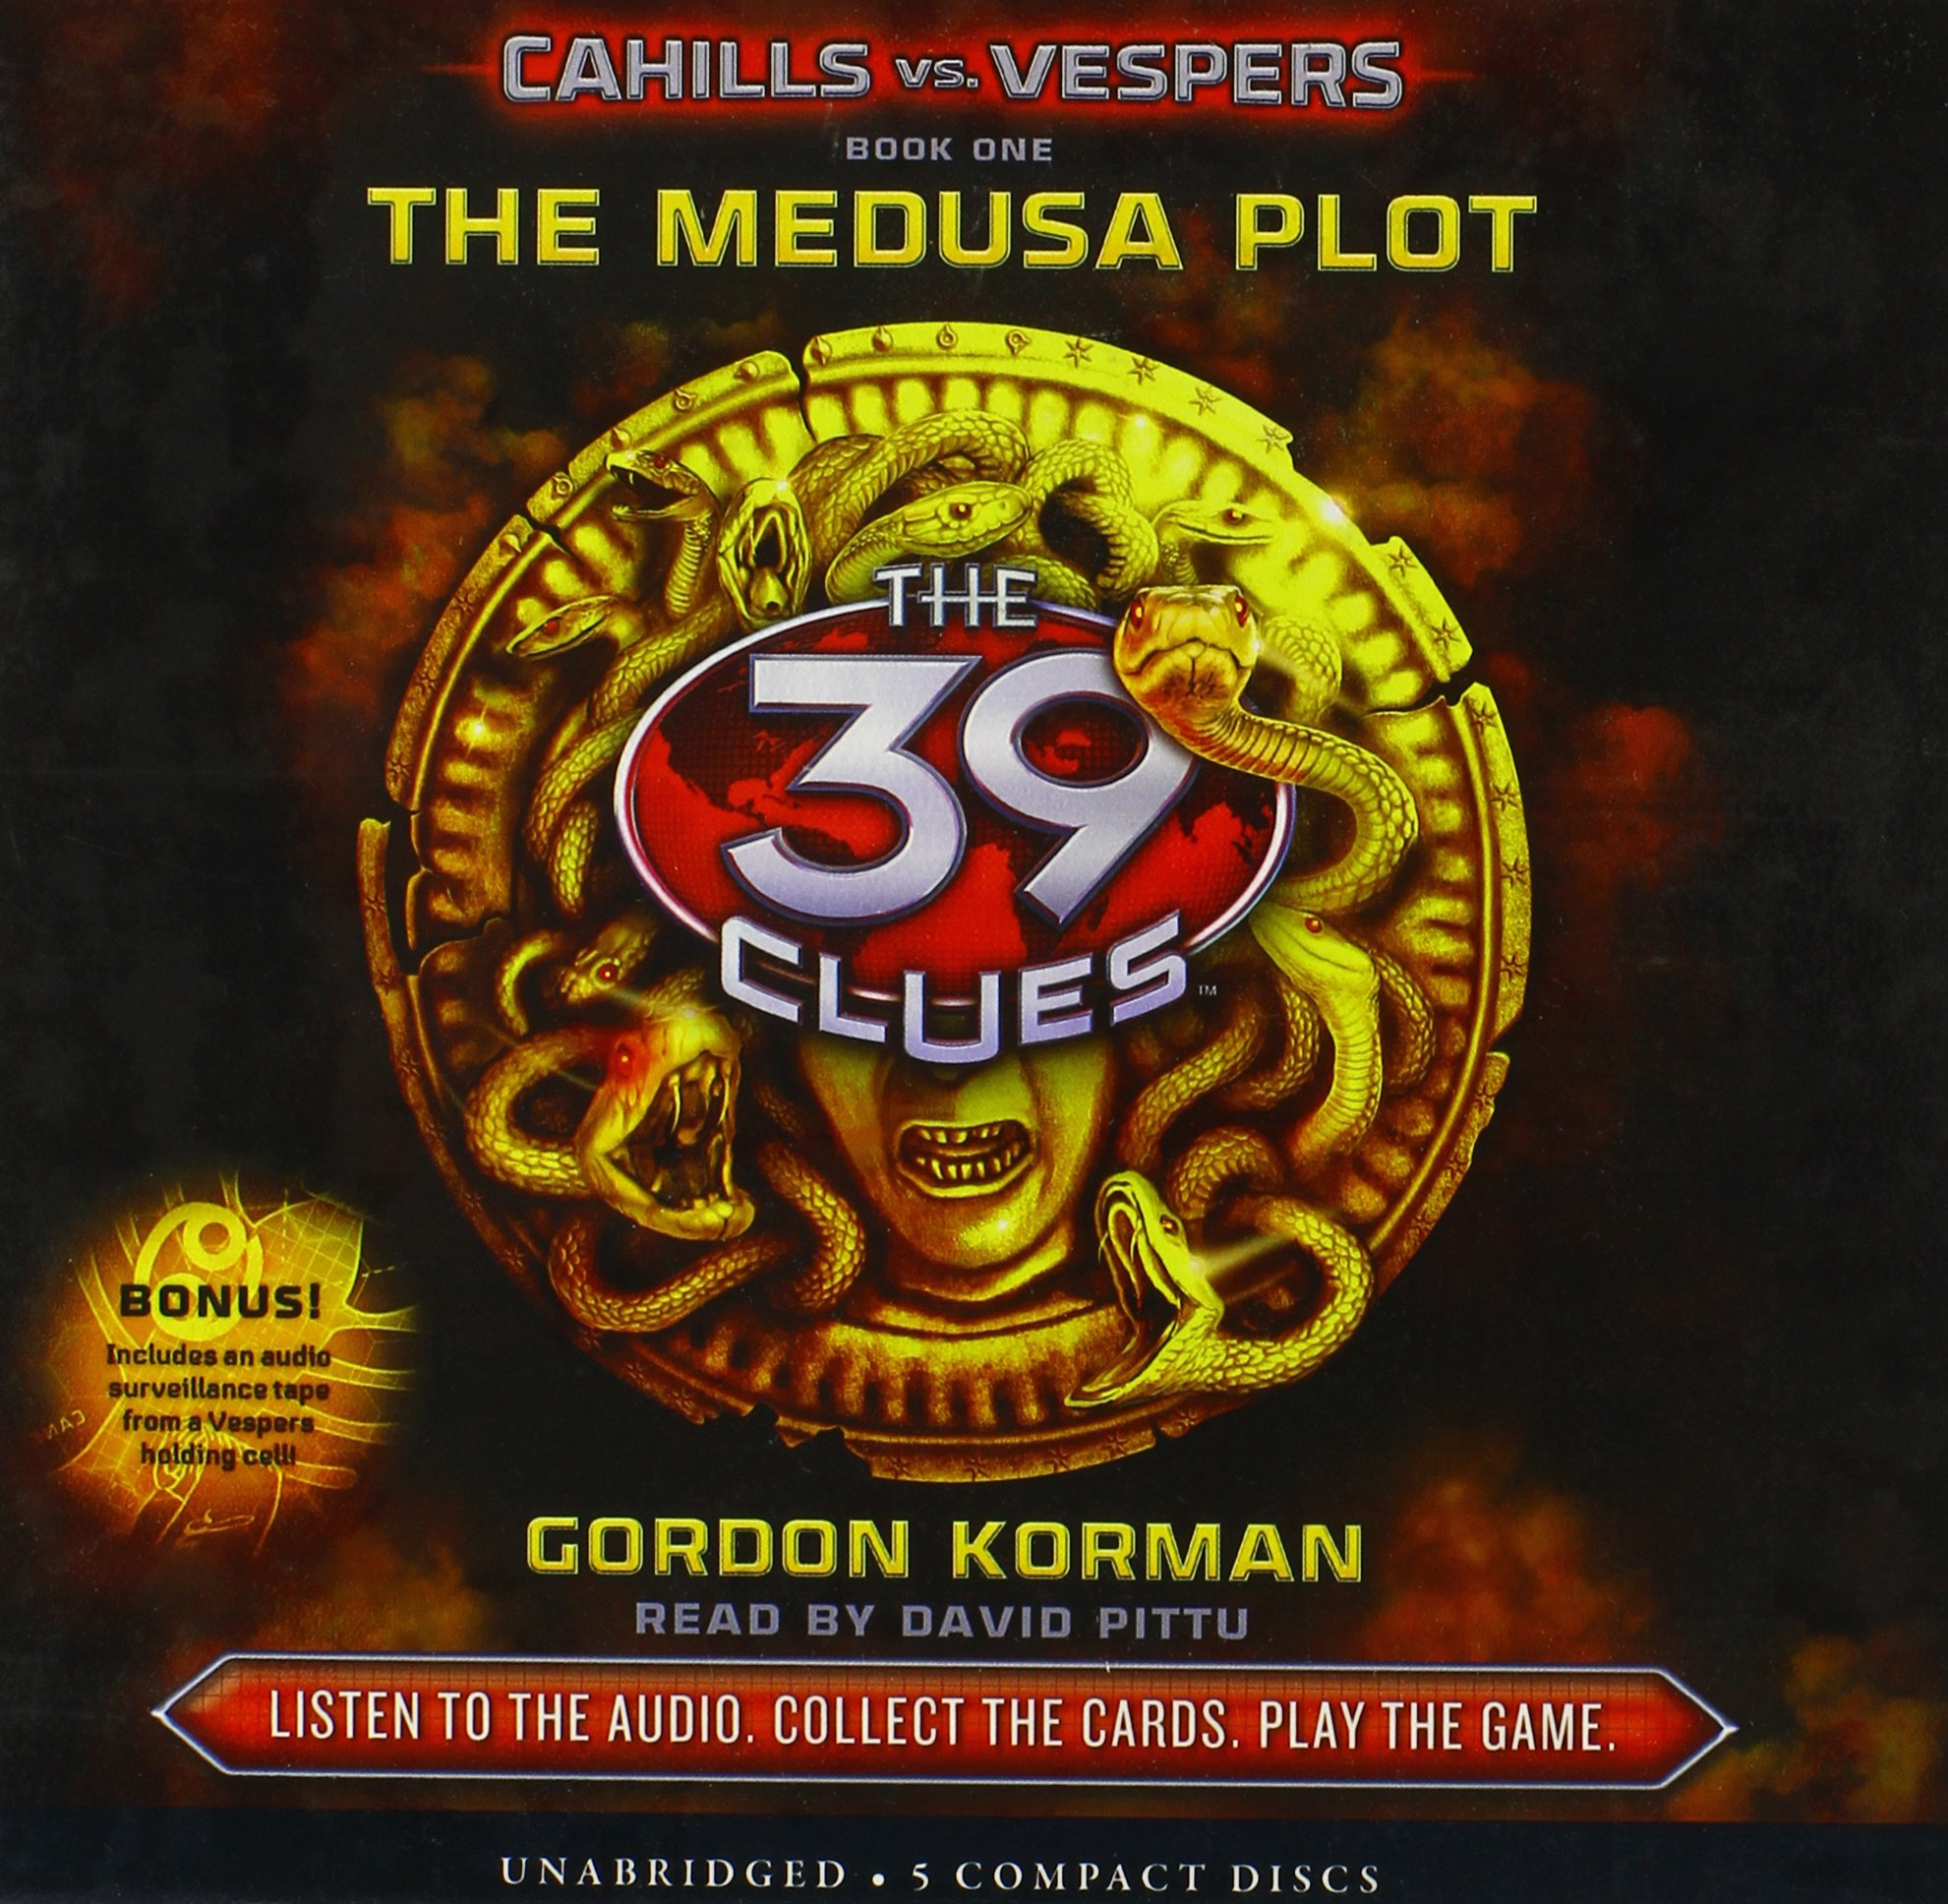 The Medusa Plot (The 39 Clues: Cahills vs. Vespers, Book 1) - Audio Library Edition